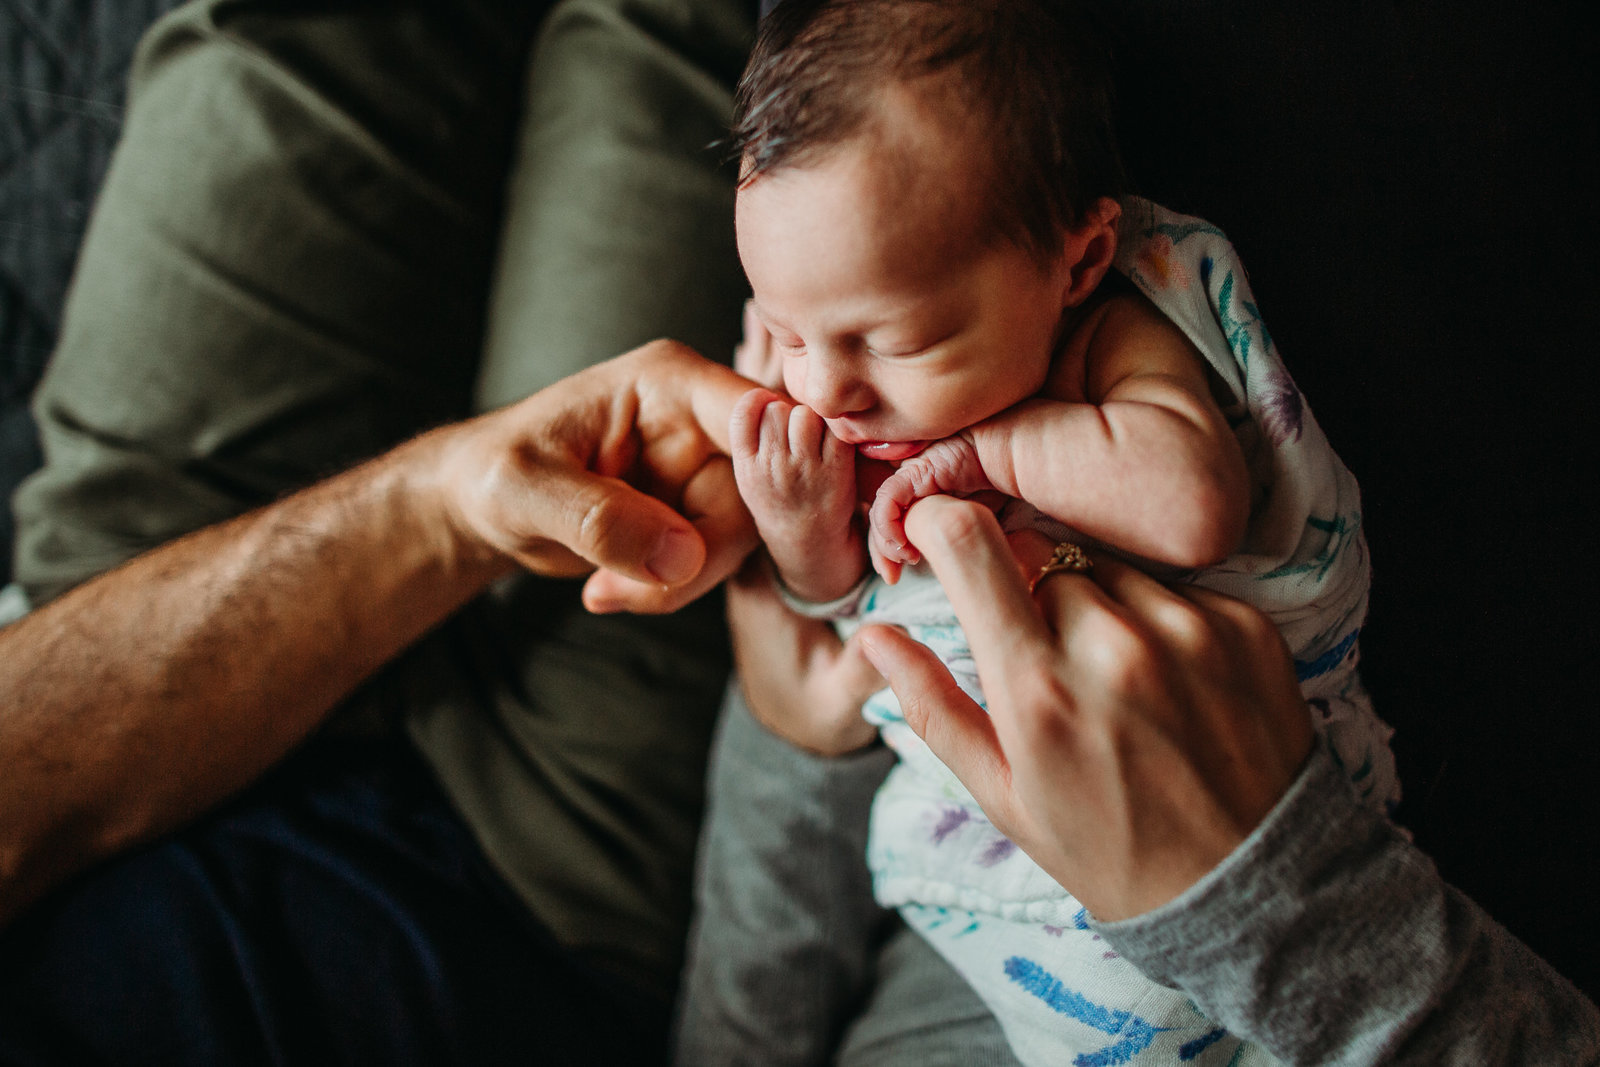 brookline newborn clutches mom and dads fingers during photoshoot